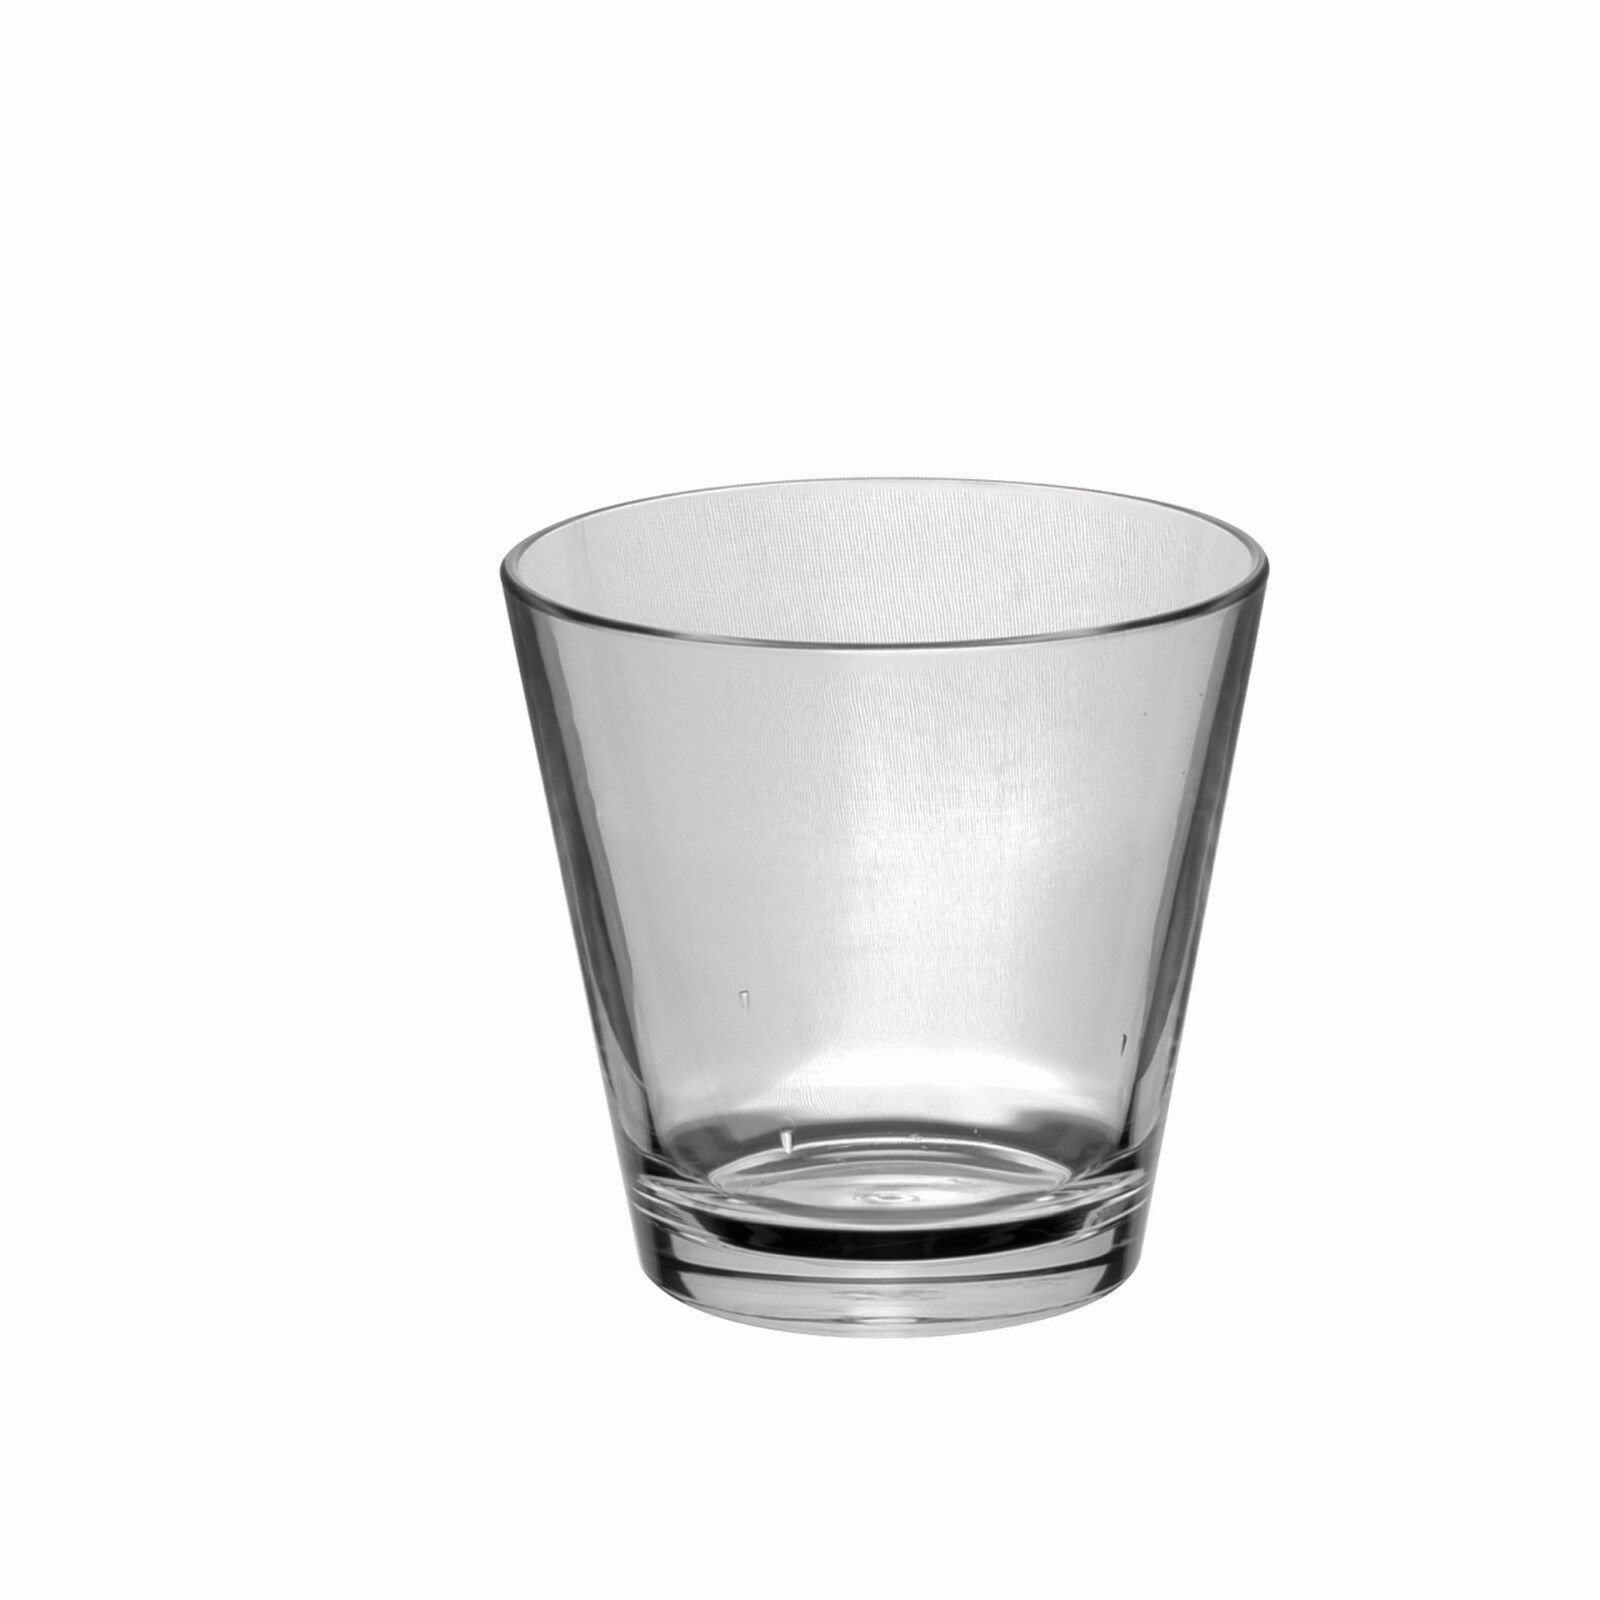 Set of Tao SUPER DELUXE Whisky Glass unbreakable, reusable, heavy weight(124gm)